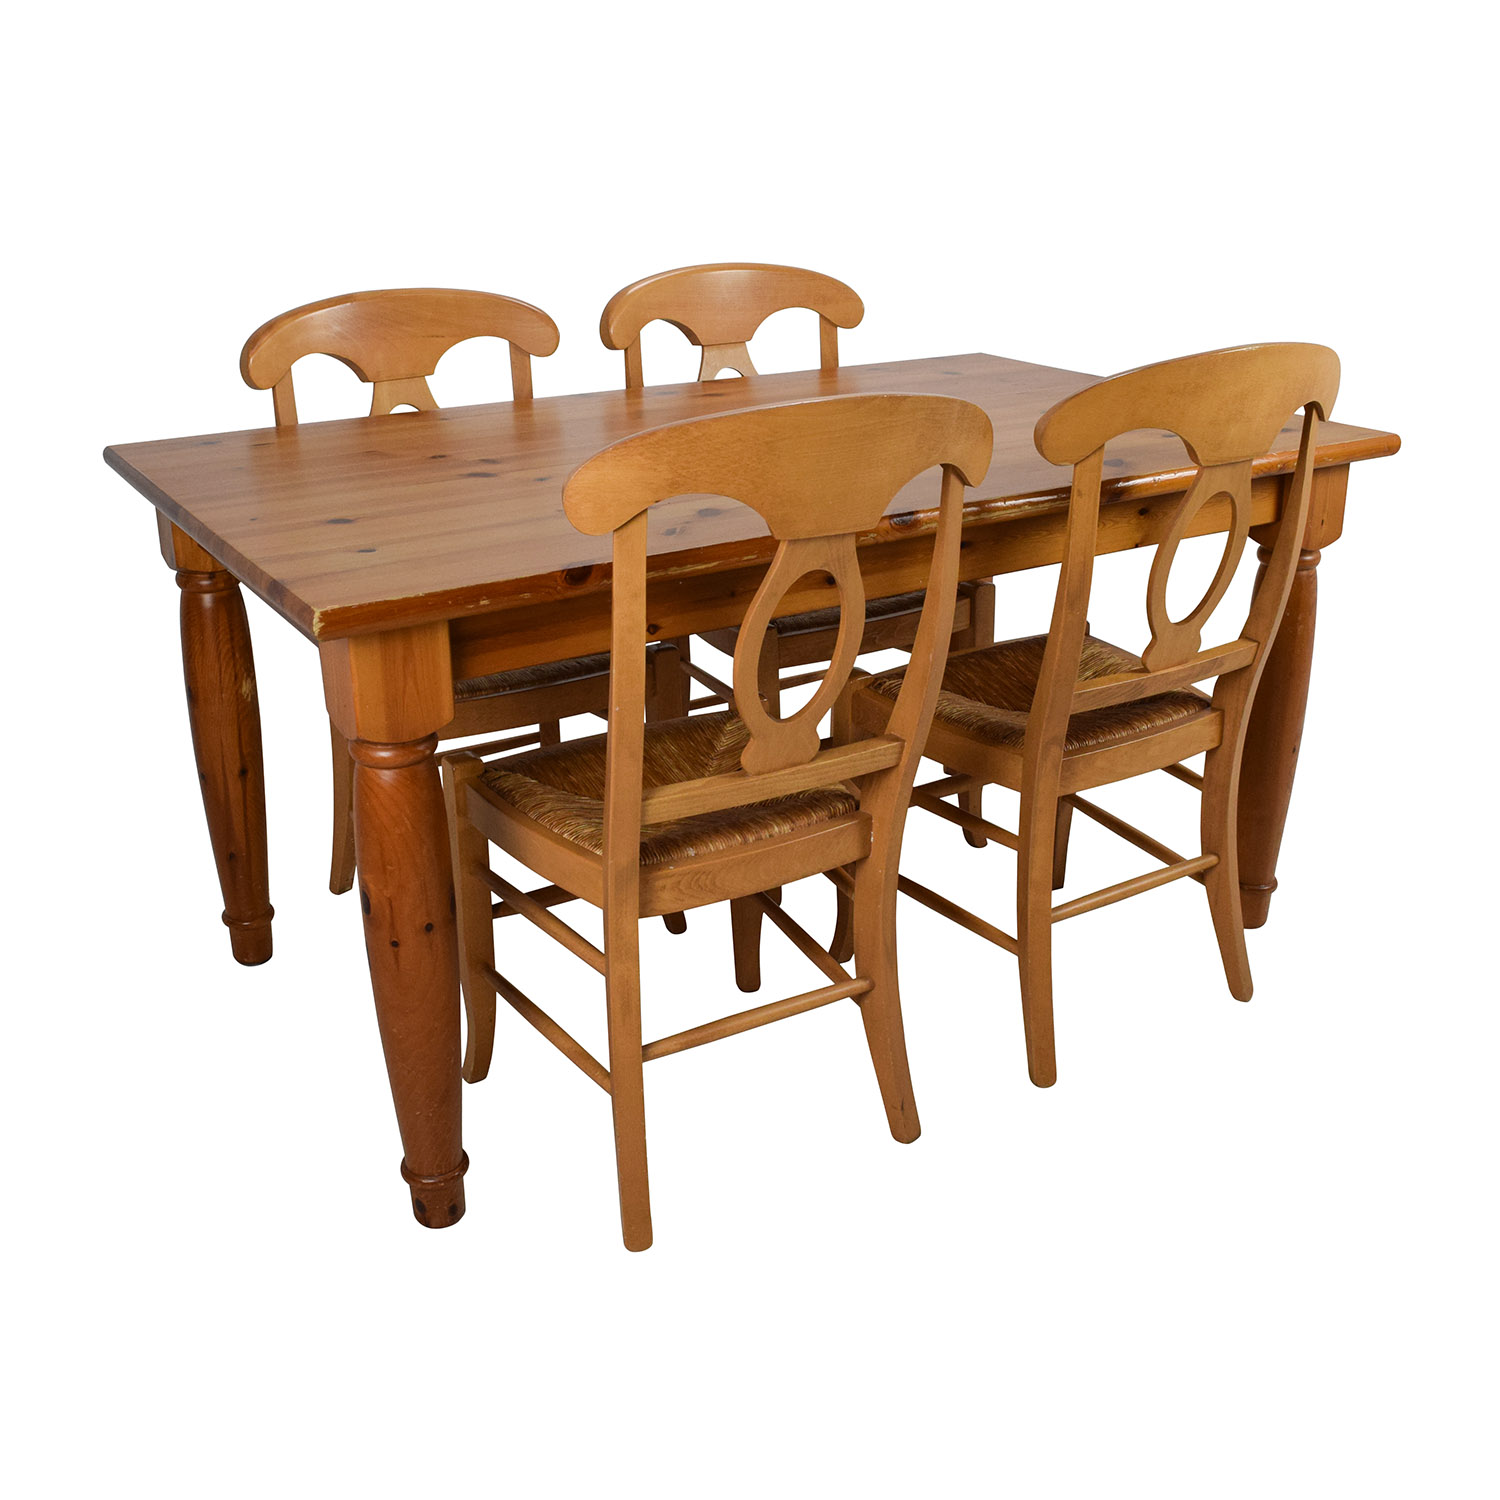 wonderful Pottery Barn Kitchen Table Set Part - 18: Pottery Barn Pottery Barn Dining Room Table with Four Chairs second hand;  buy ...